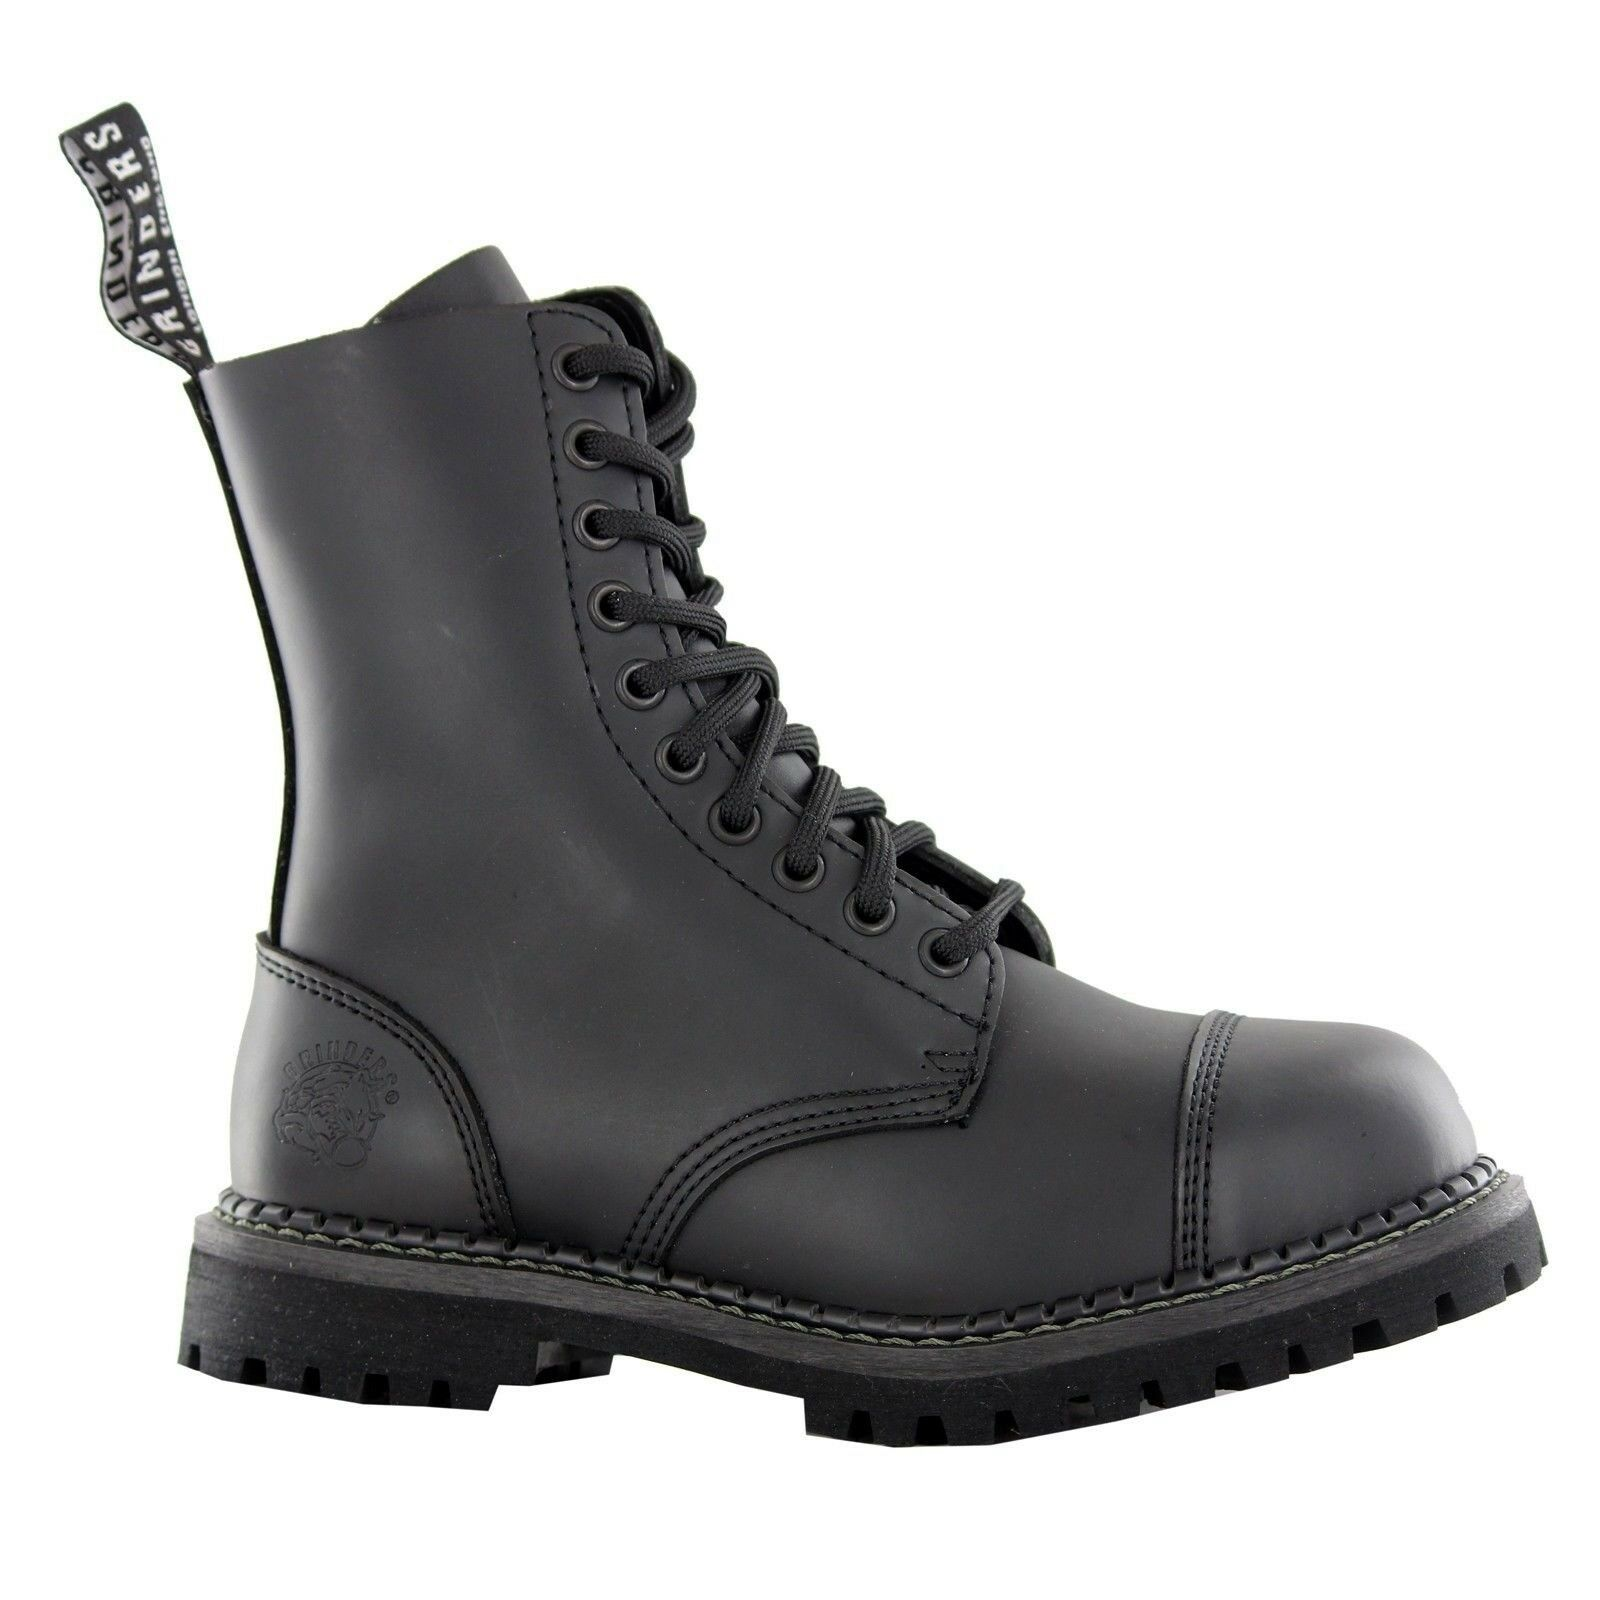 Grinders Stag Cs Derby Combat Boots Black Leather Safety Steel Cap Punk